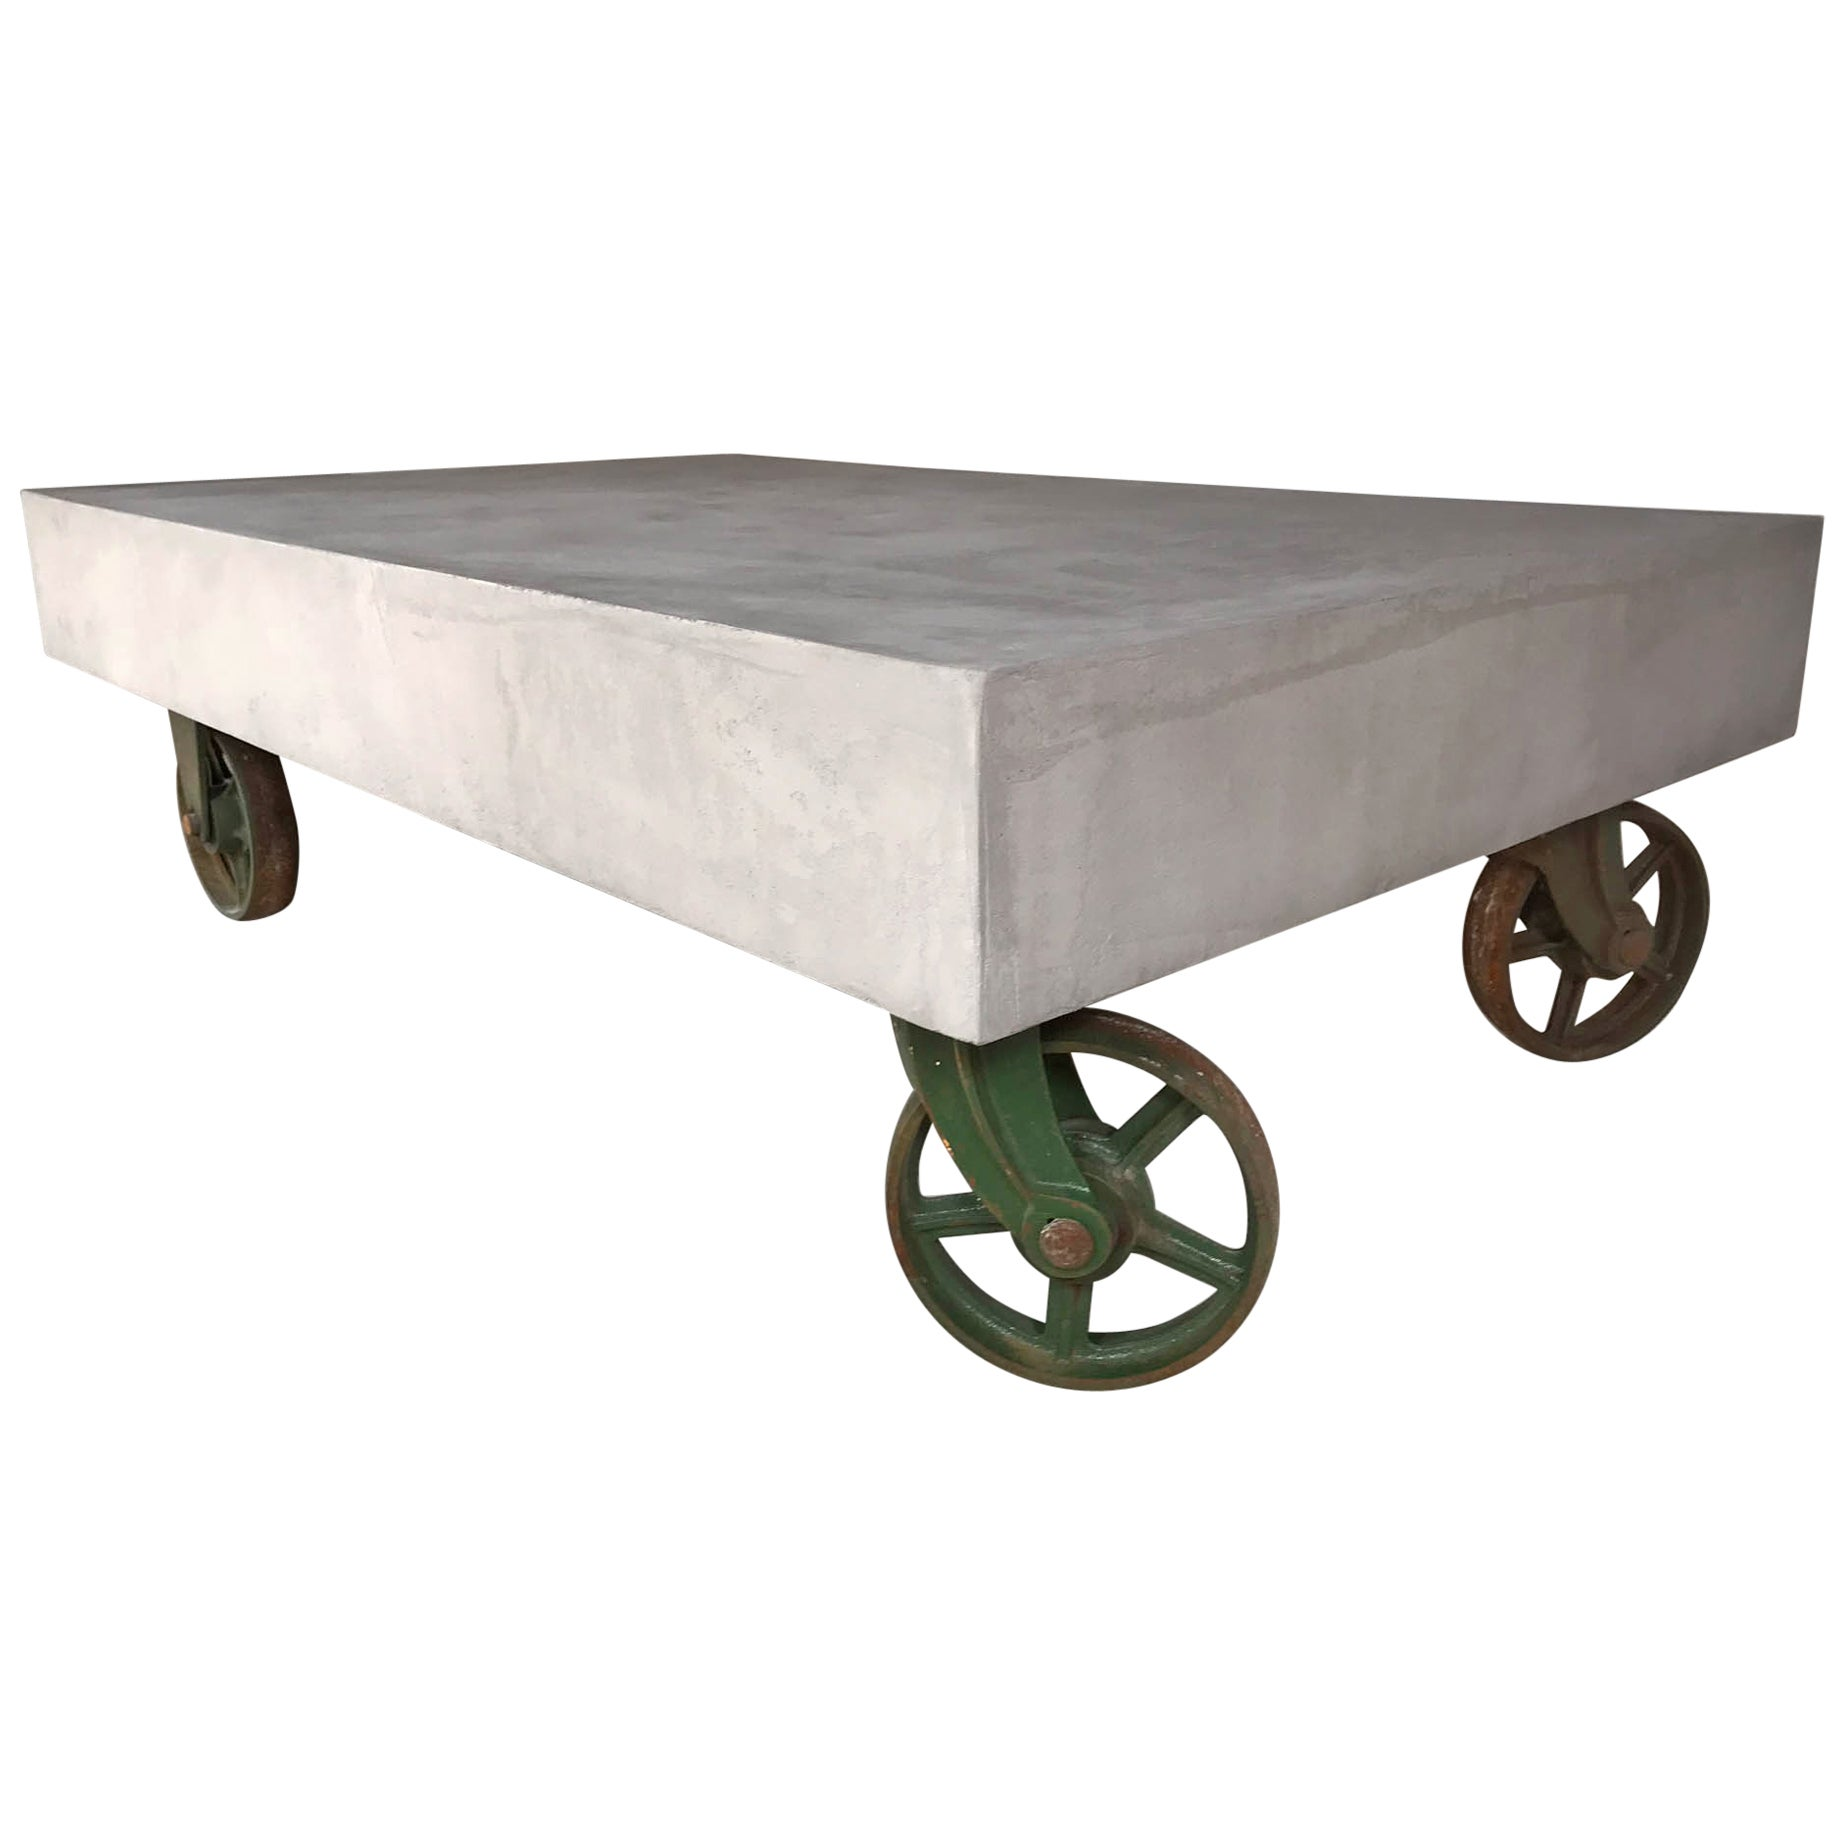 Table On Wheels 21st Century Vintage Industrial Coffee Table Wheels Concrete Style Loft Warehous